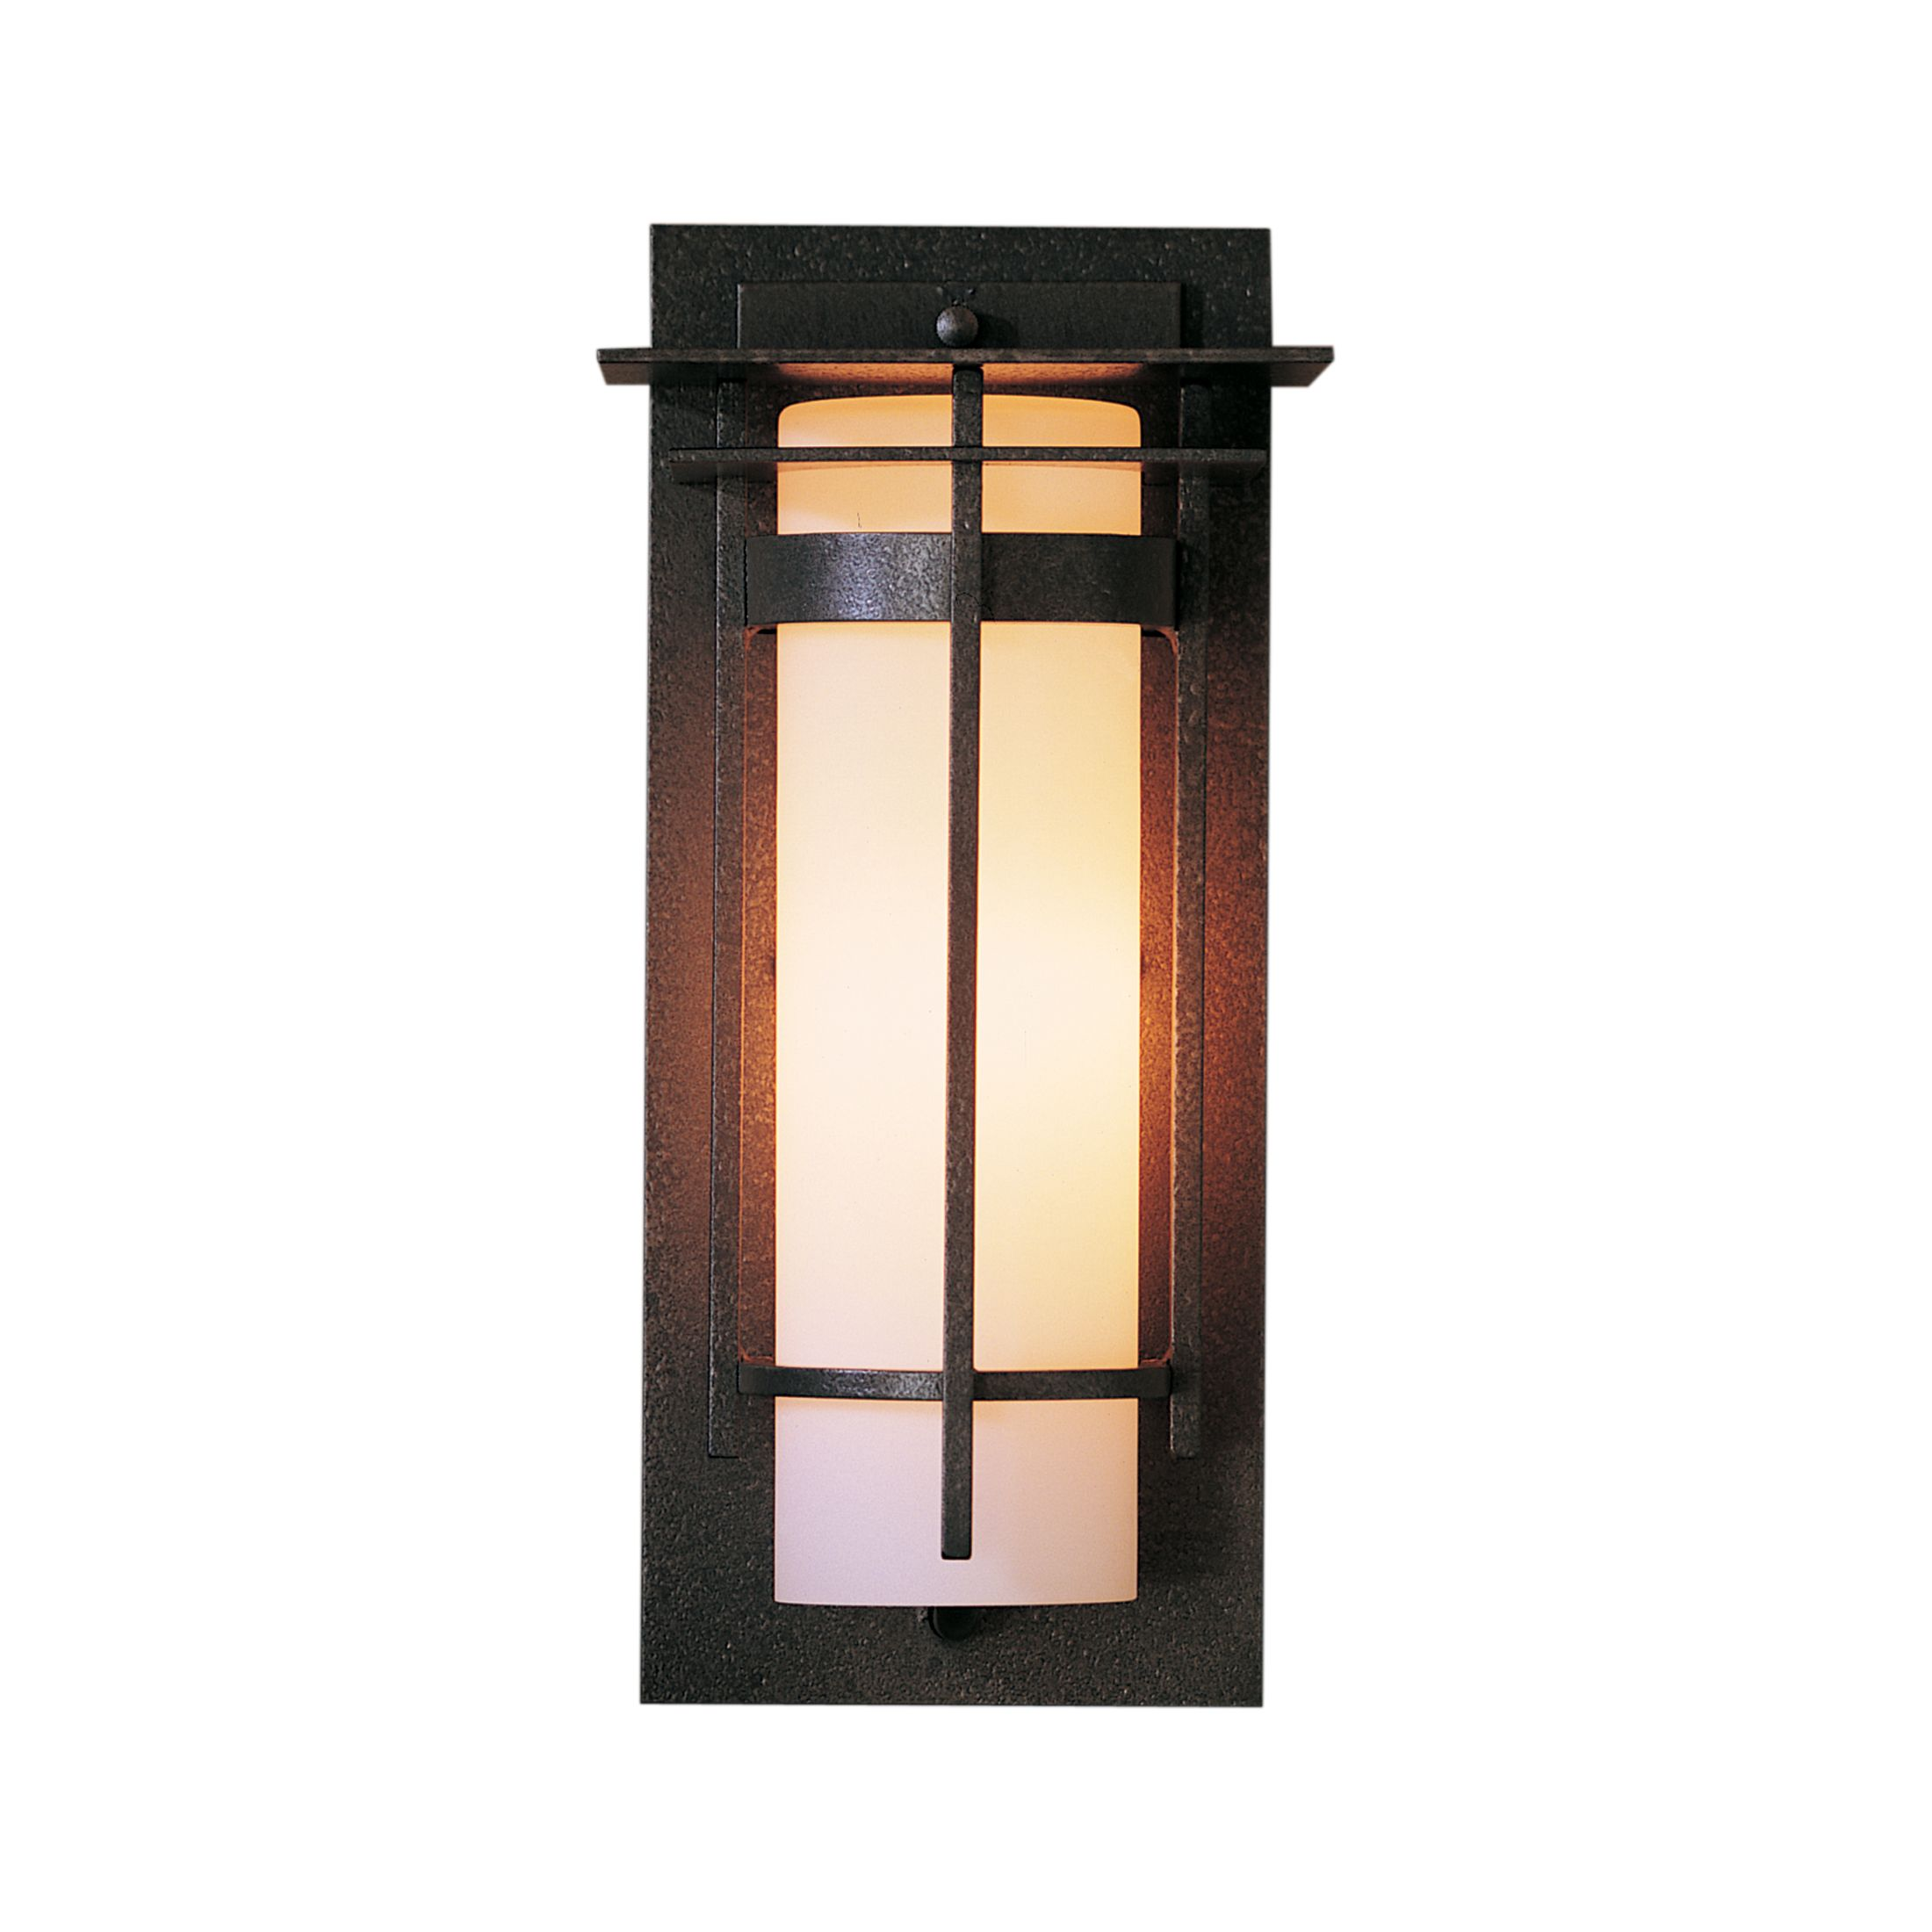 Product Detail: Banded with Top Plate Small Outdoor Sconce